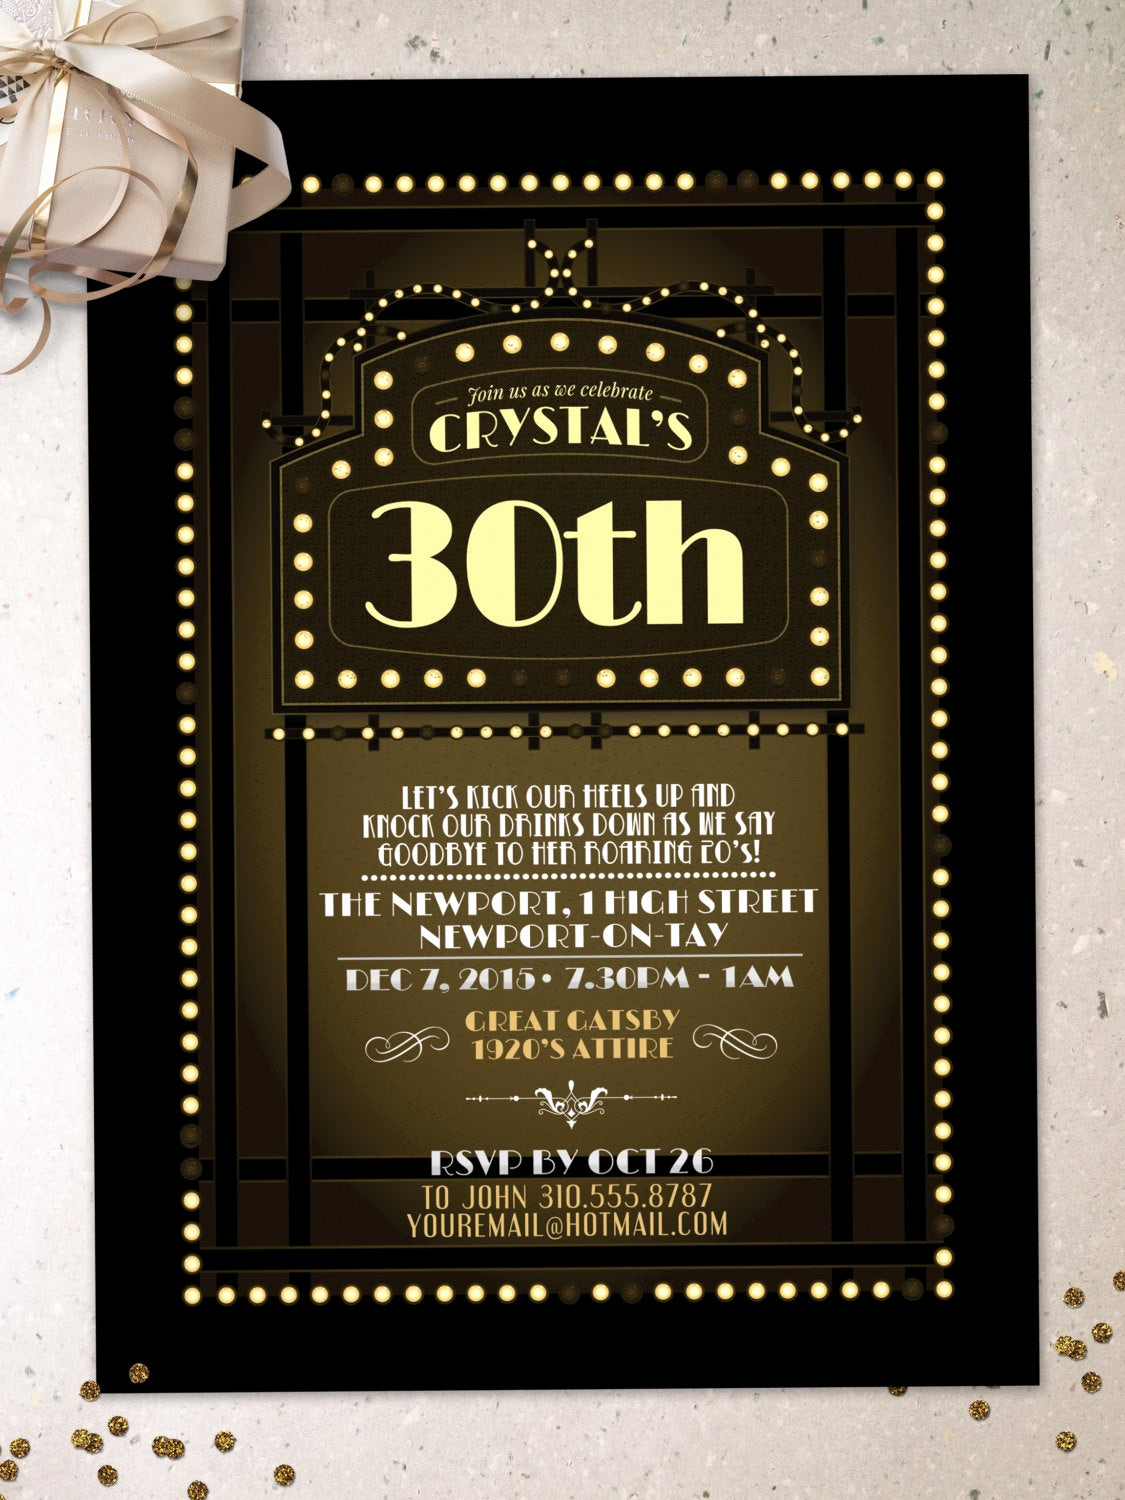 The Great Gatsby Invitation Best Of Great Gatsby Birthday Invitation Roaring 20 S Hollywood